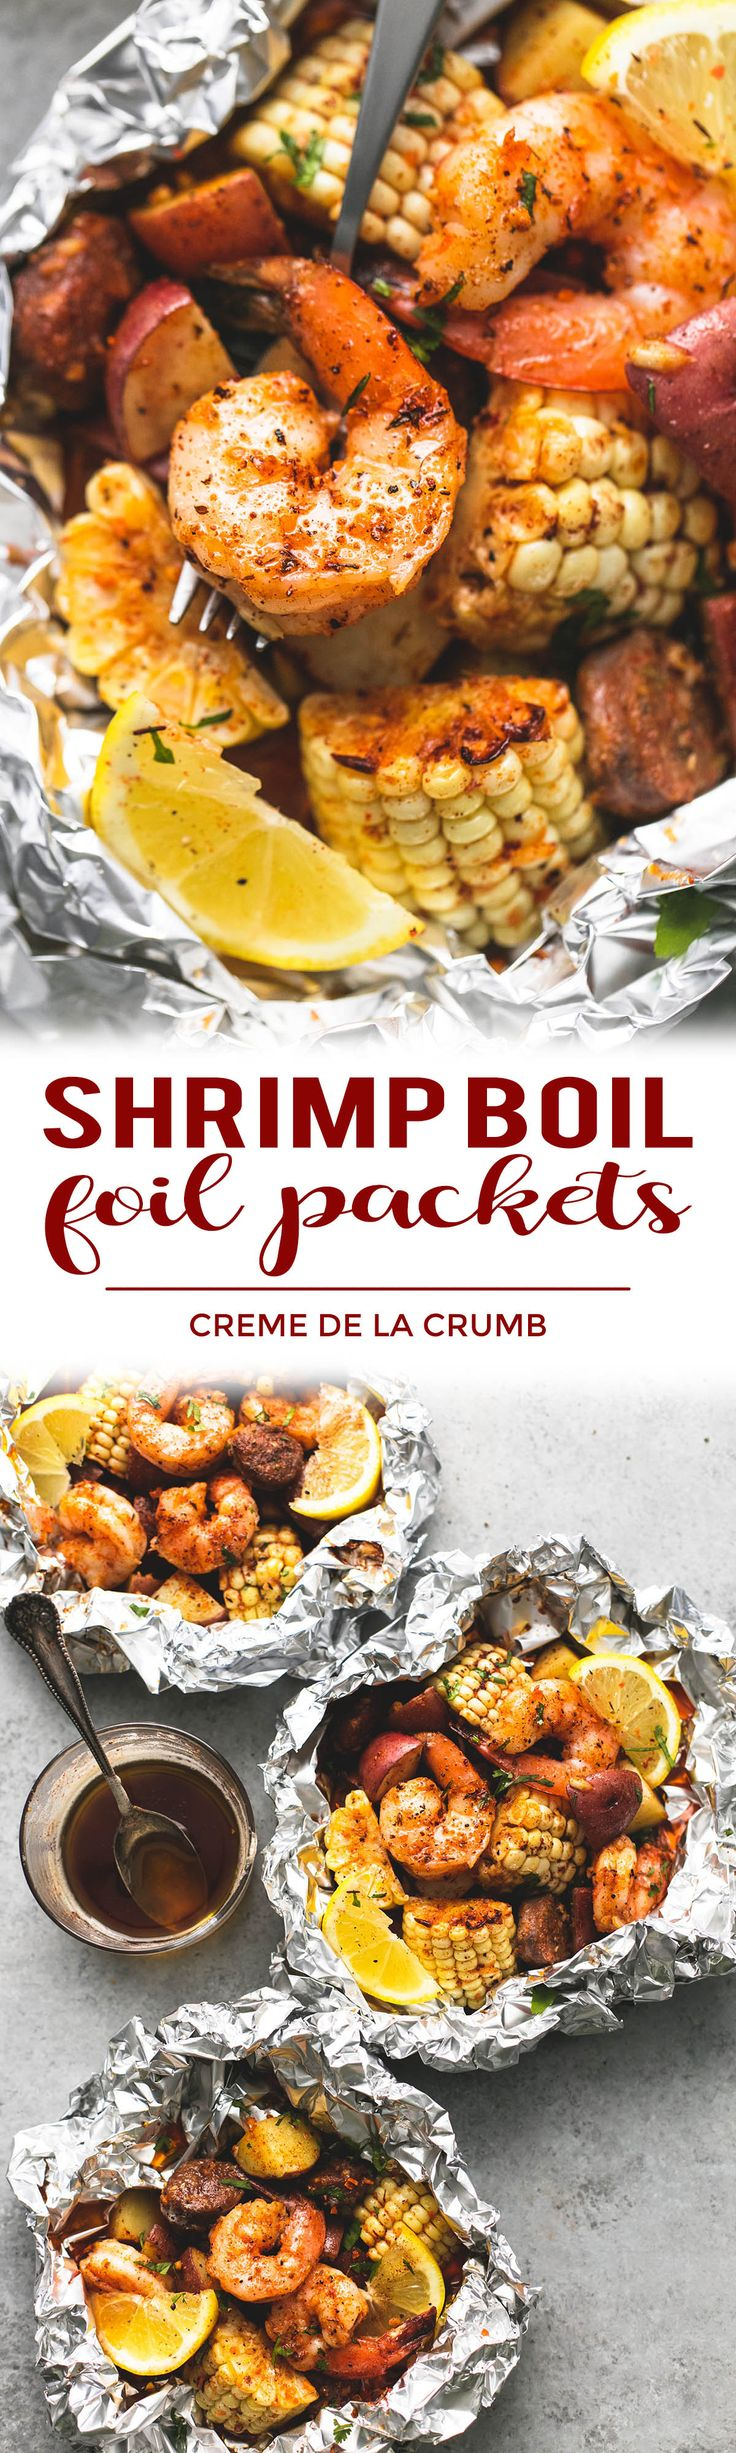 Easy, tasty shrimp boil foil packs baked or grilled with summer veggies, homemade seasoning, fresh lemon, and brown butter sauce. | lecremedelacrumb.com Best recipes!